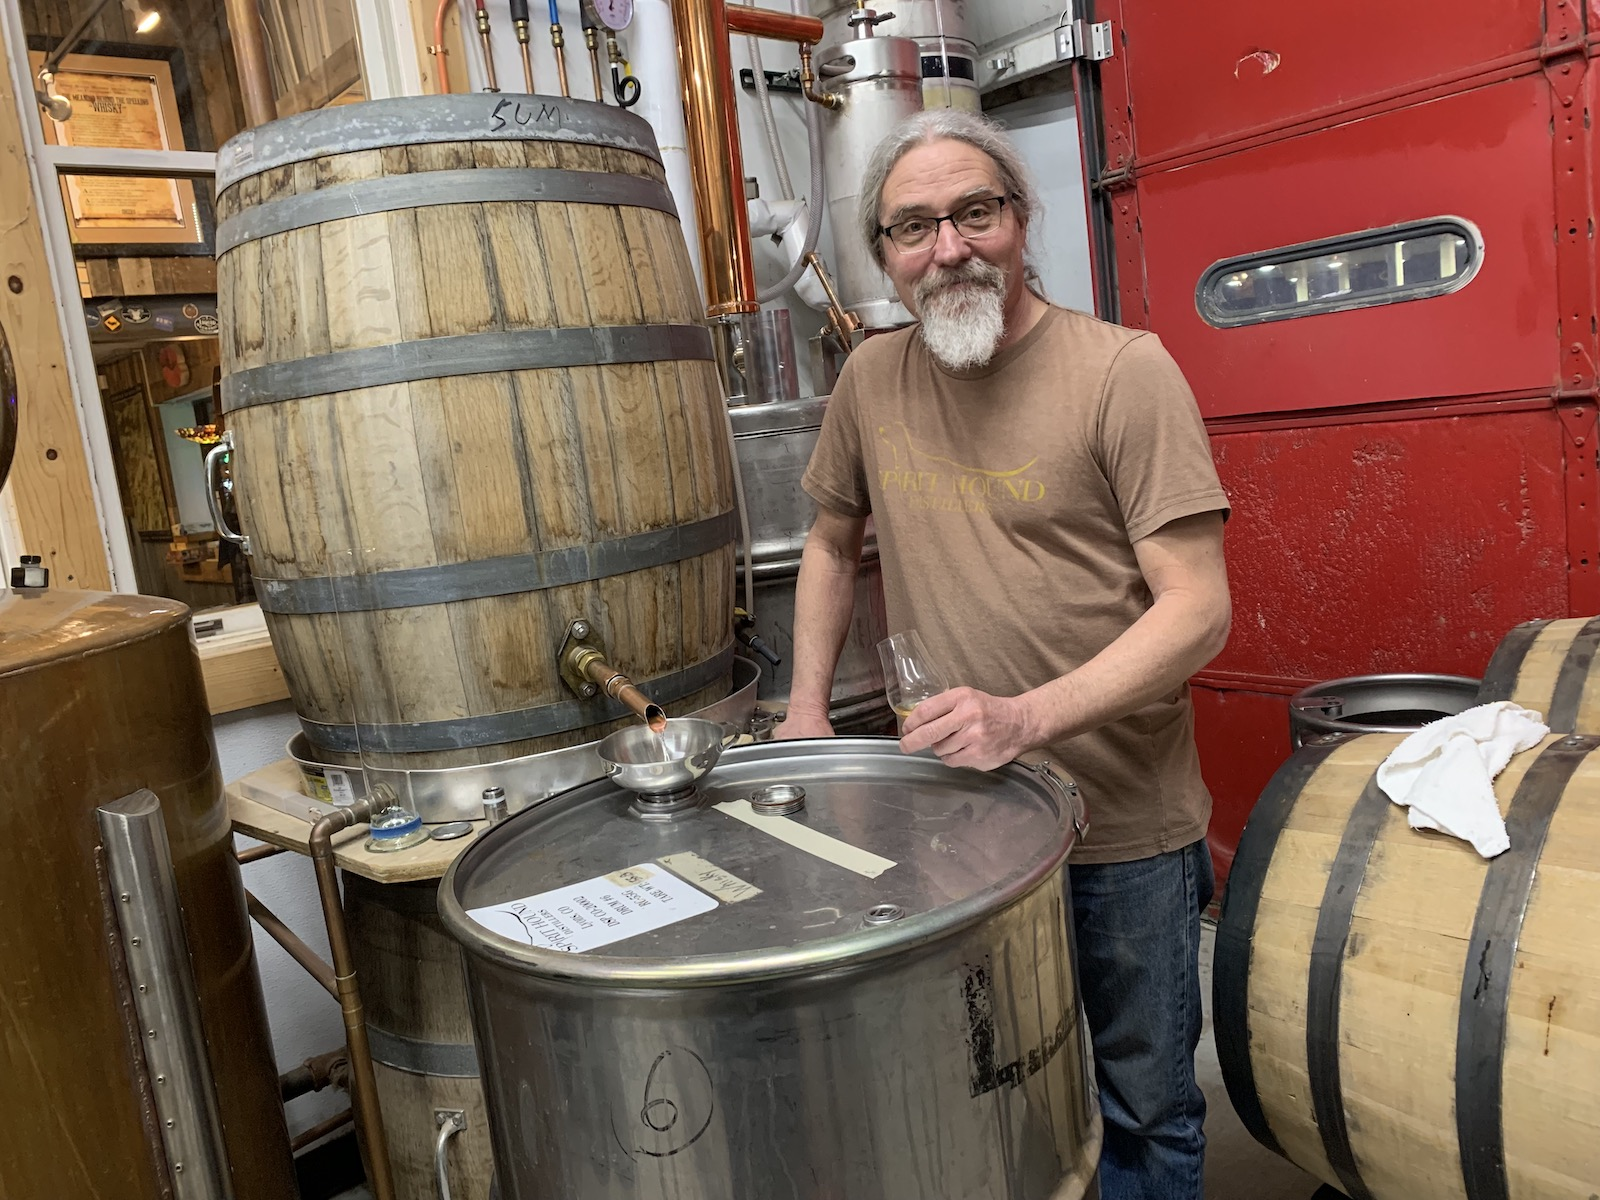 How Colorado Brewers and Distillers Are Coping in the Age of COVID-19